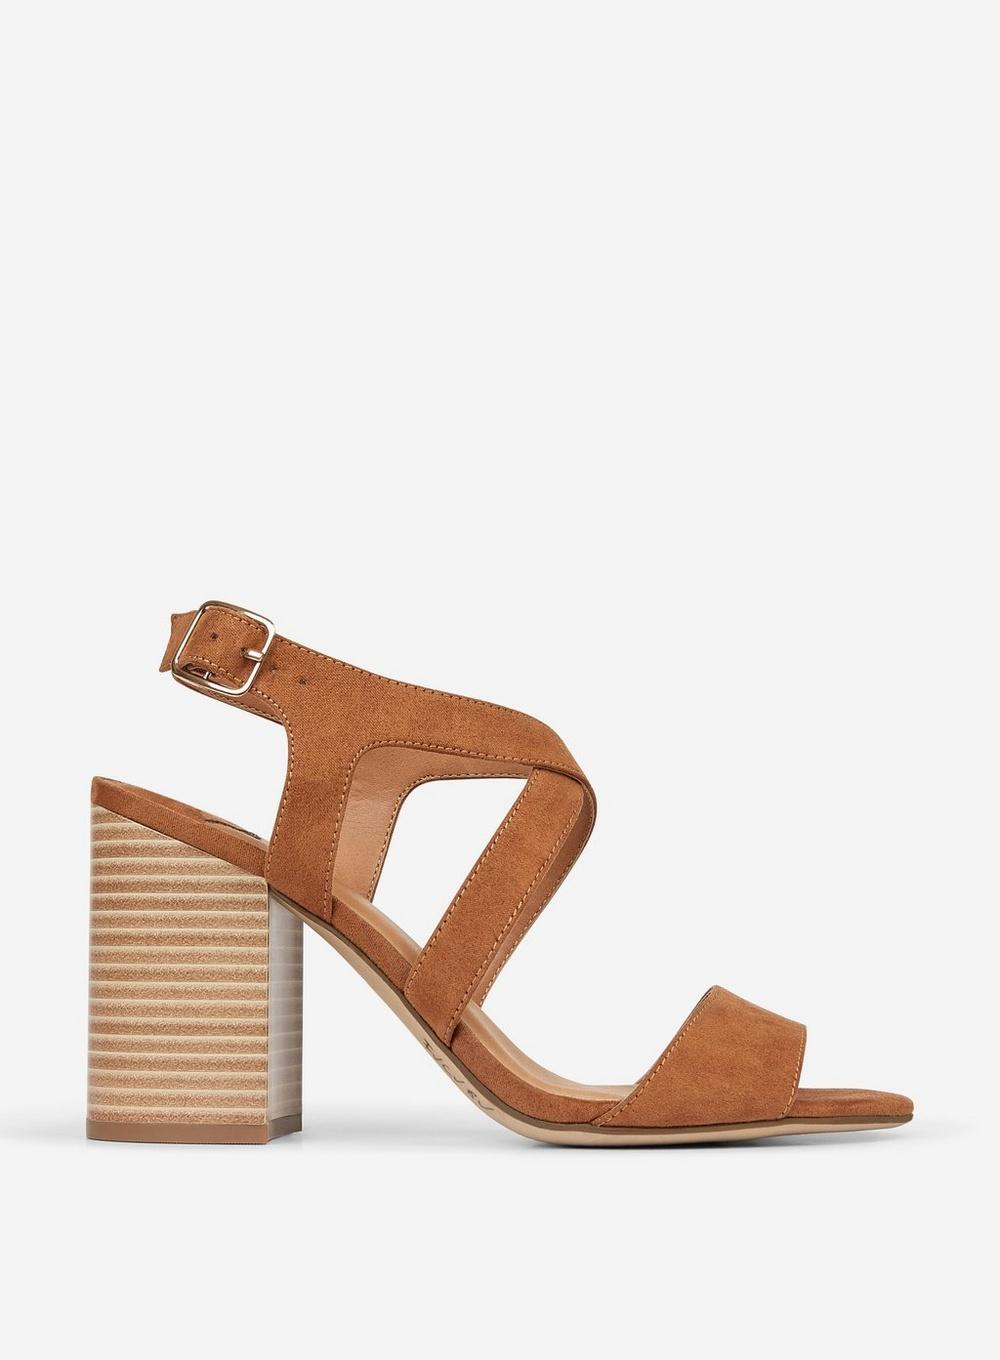 6c9f08948c814a Lyst - Dorothy Perkins Wide Fit Tan  spye  Crossover Sandals in ...